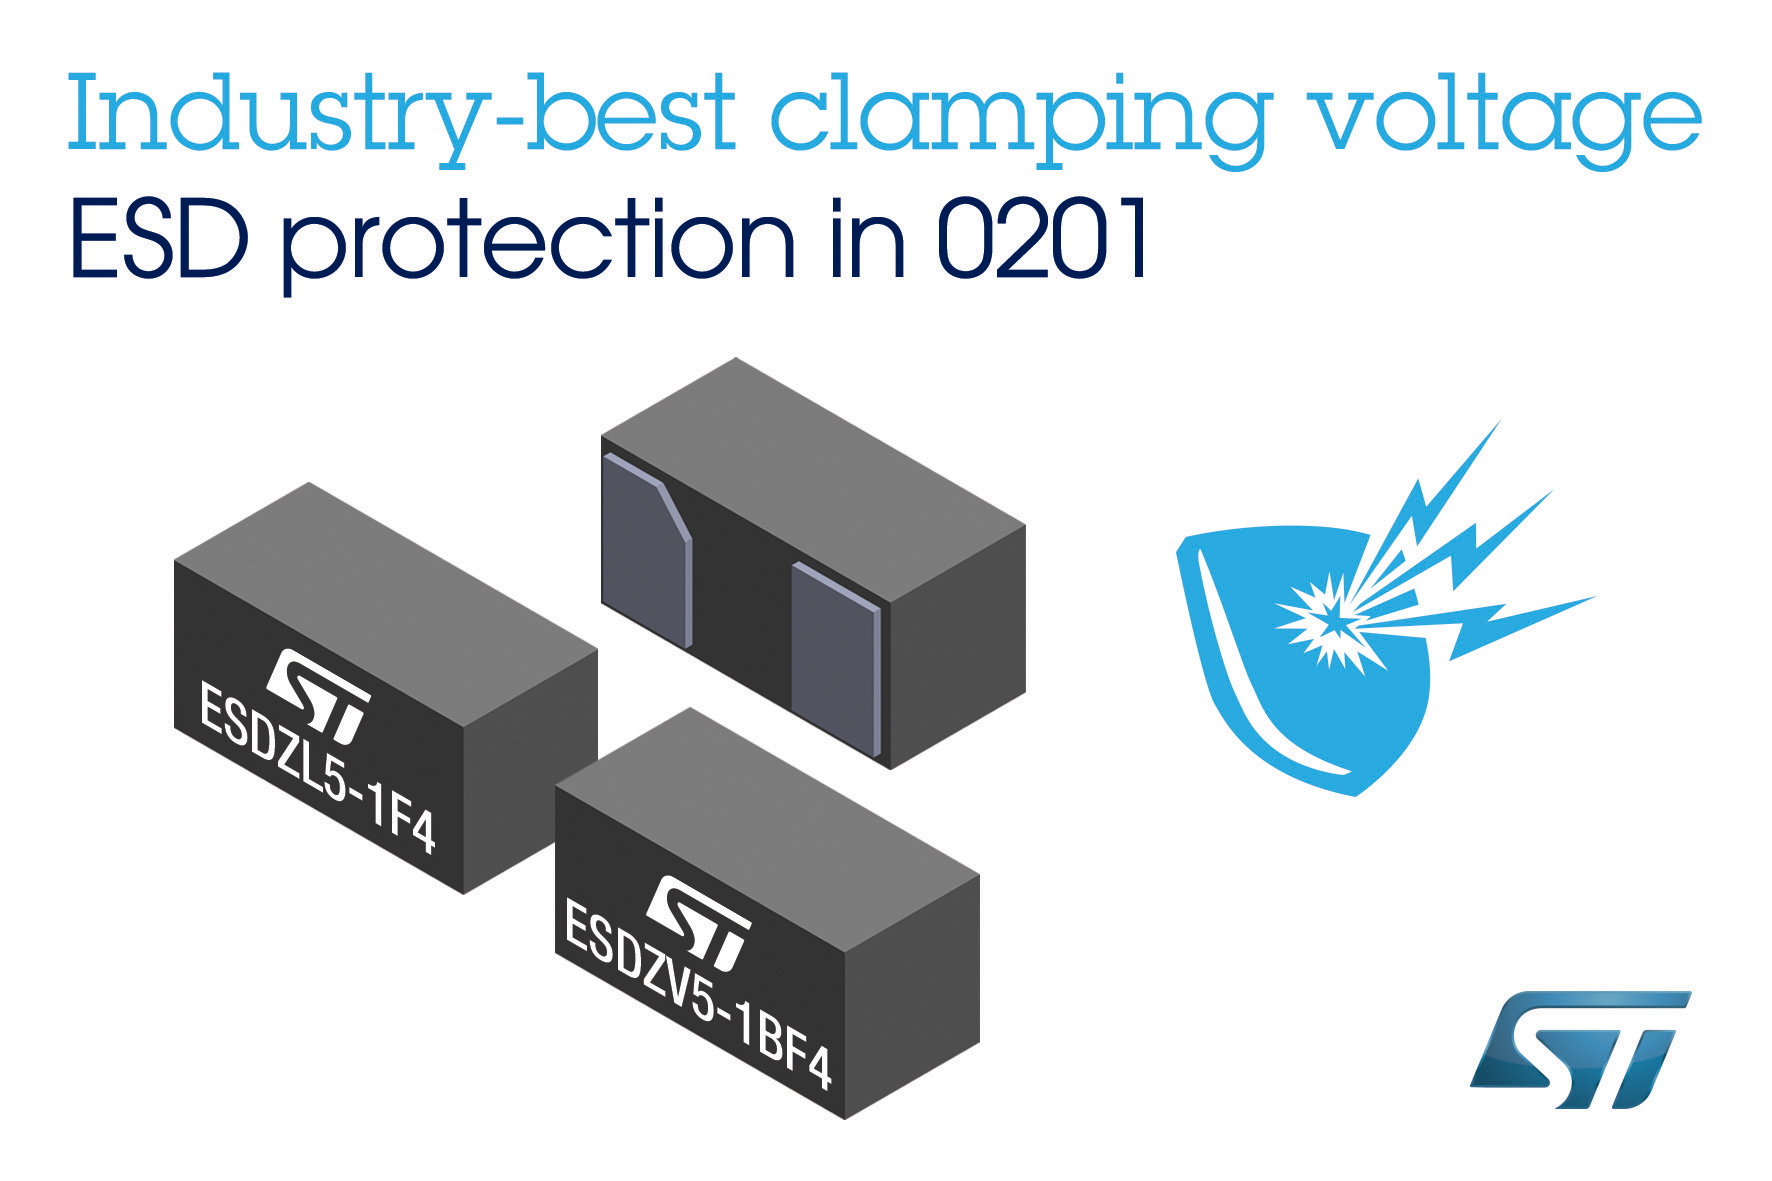 STMicroelectronics' ESD-Clamping Diodes in 0201 Package Bring